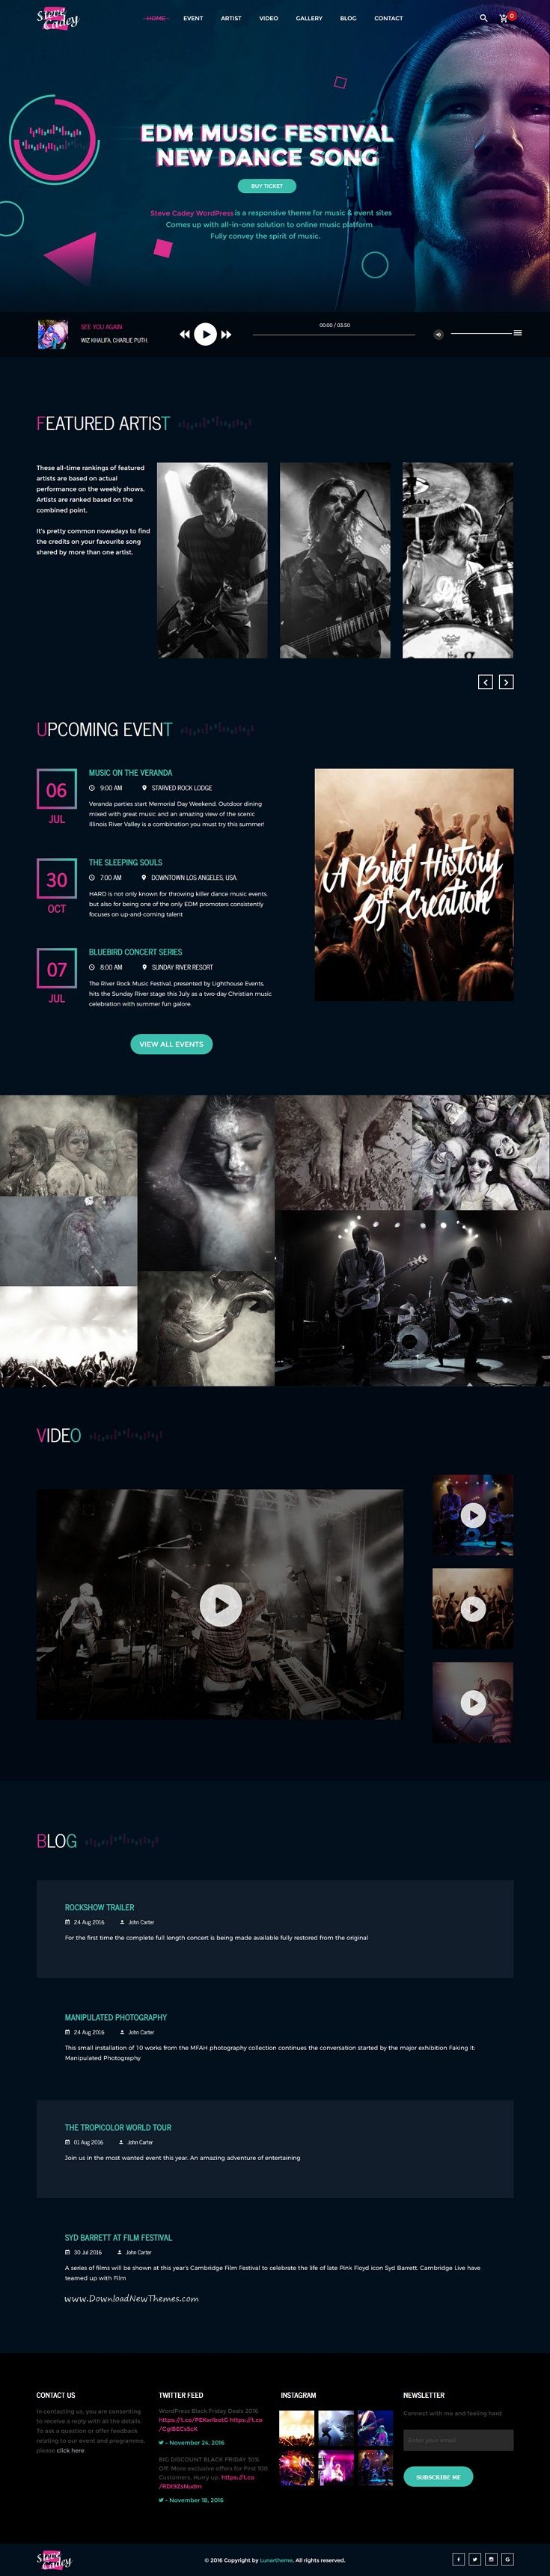 Steve Cadey is a responsive #WordPress theme for #music and #events website #webdev download now➩ https://themeforest.net/item/steve-cadey-wordpress-music-theme-for-musicians-djs-bands-solo-artists/18155951?ref=Datasata